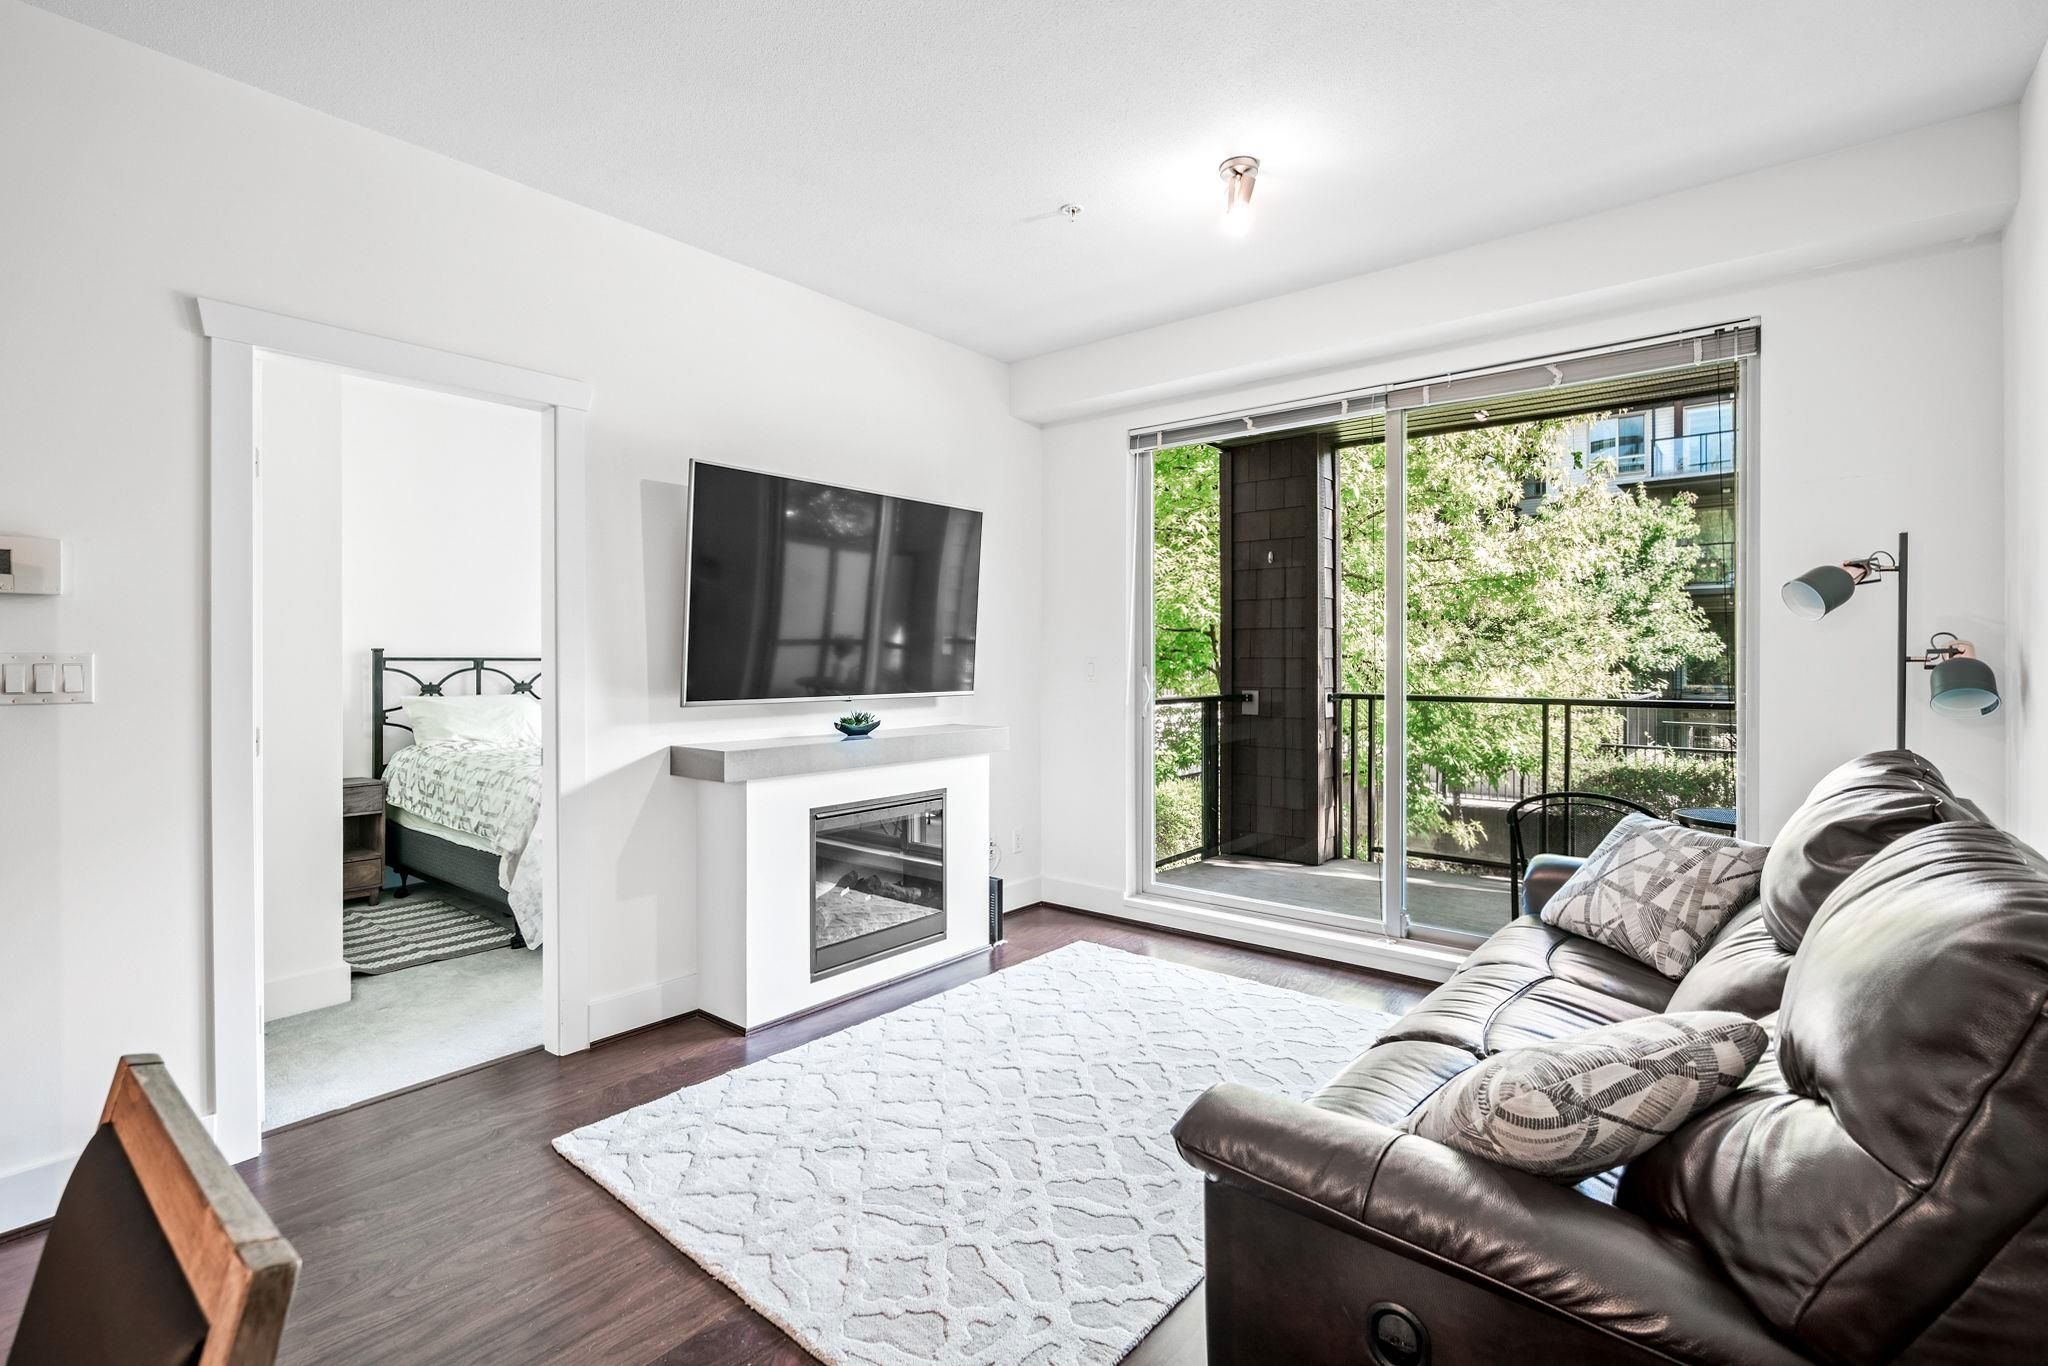 """Main Photo: 210 7428 BYRNEPARK Walk in Burnaby: South Slope Condo for sale in """"GREEN"""" (Burnaby South)  : MLS®# R2617440"""